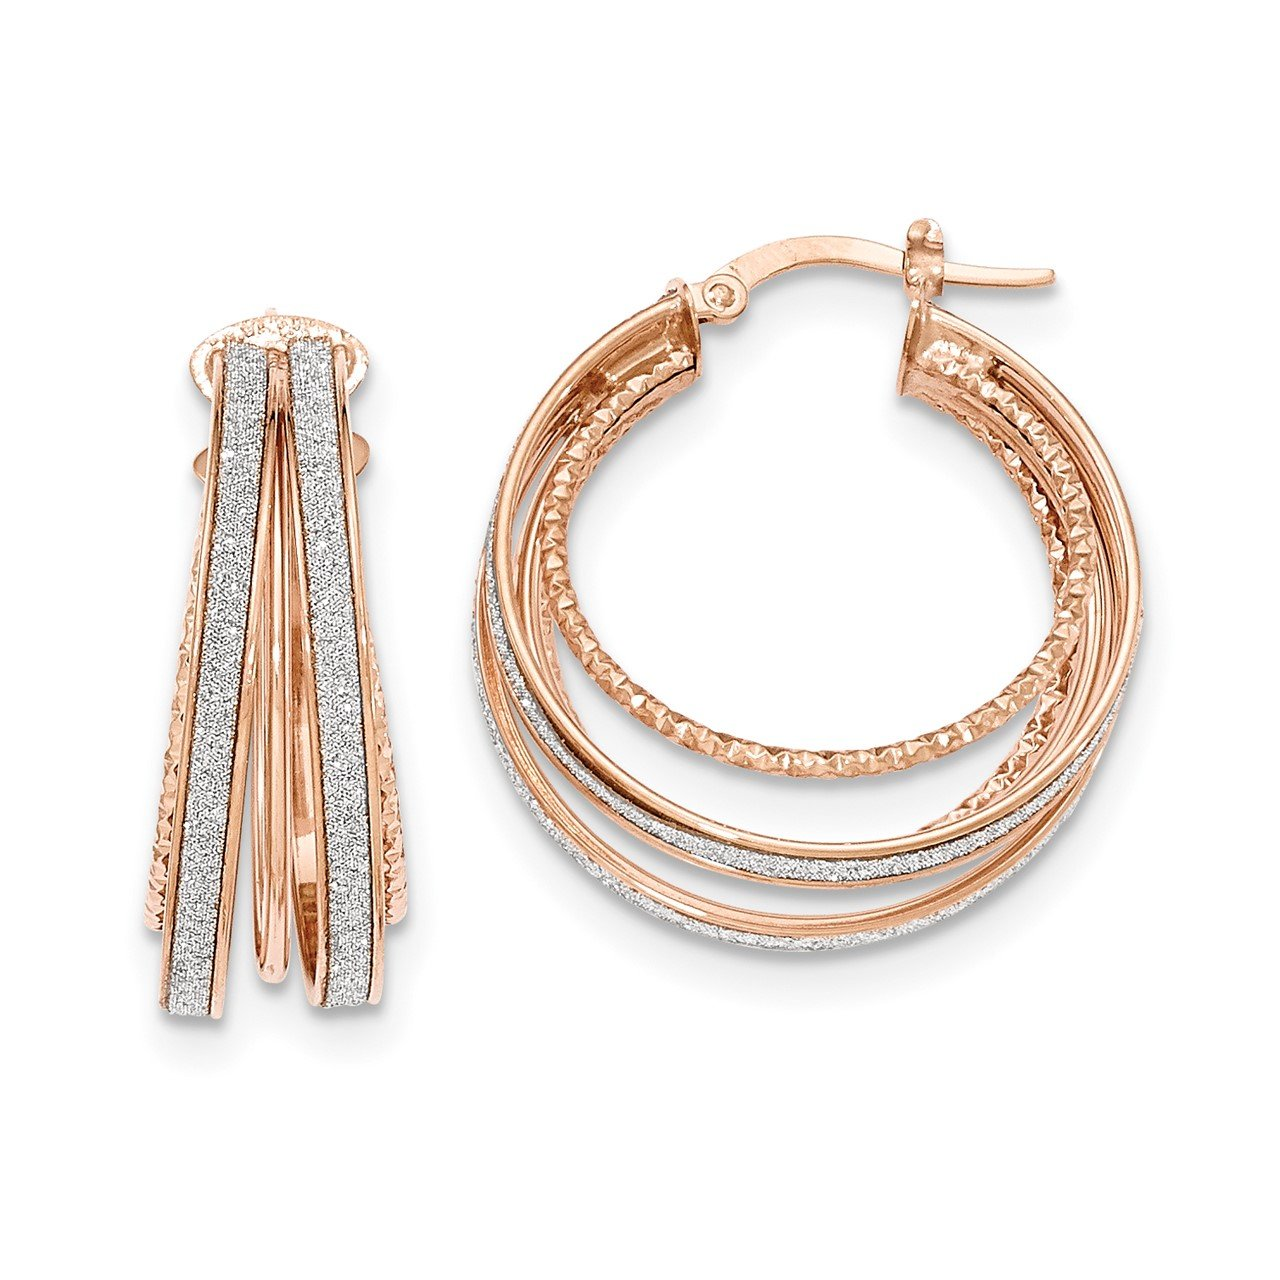 14k Rose Gold Polished Glitter Infused Round Hoop Earrings